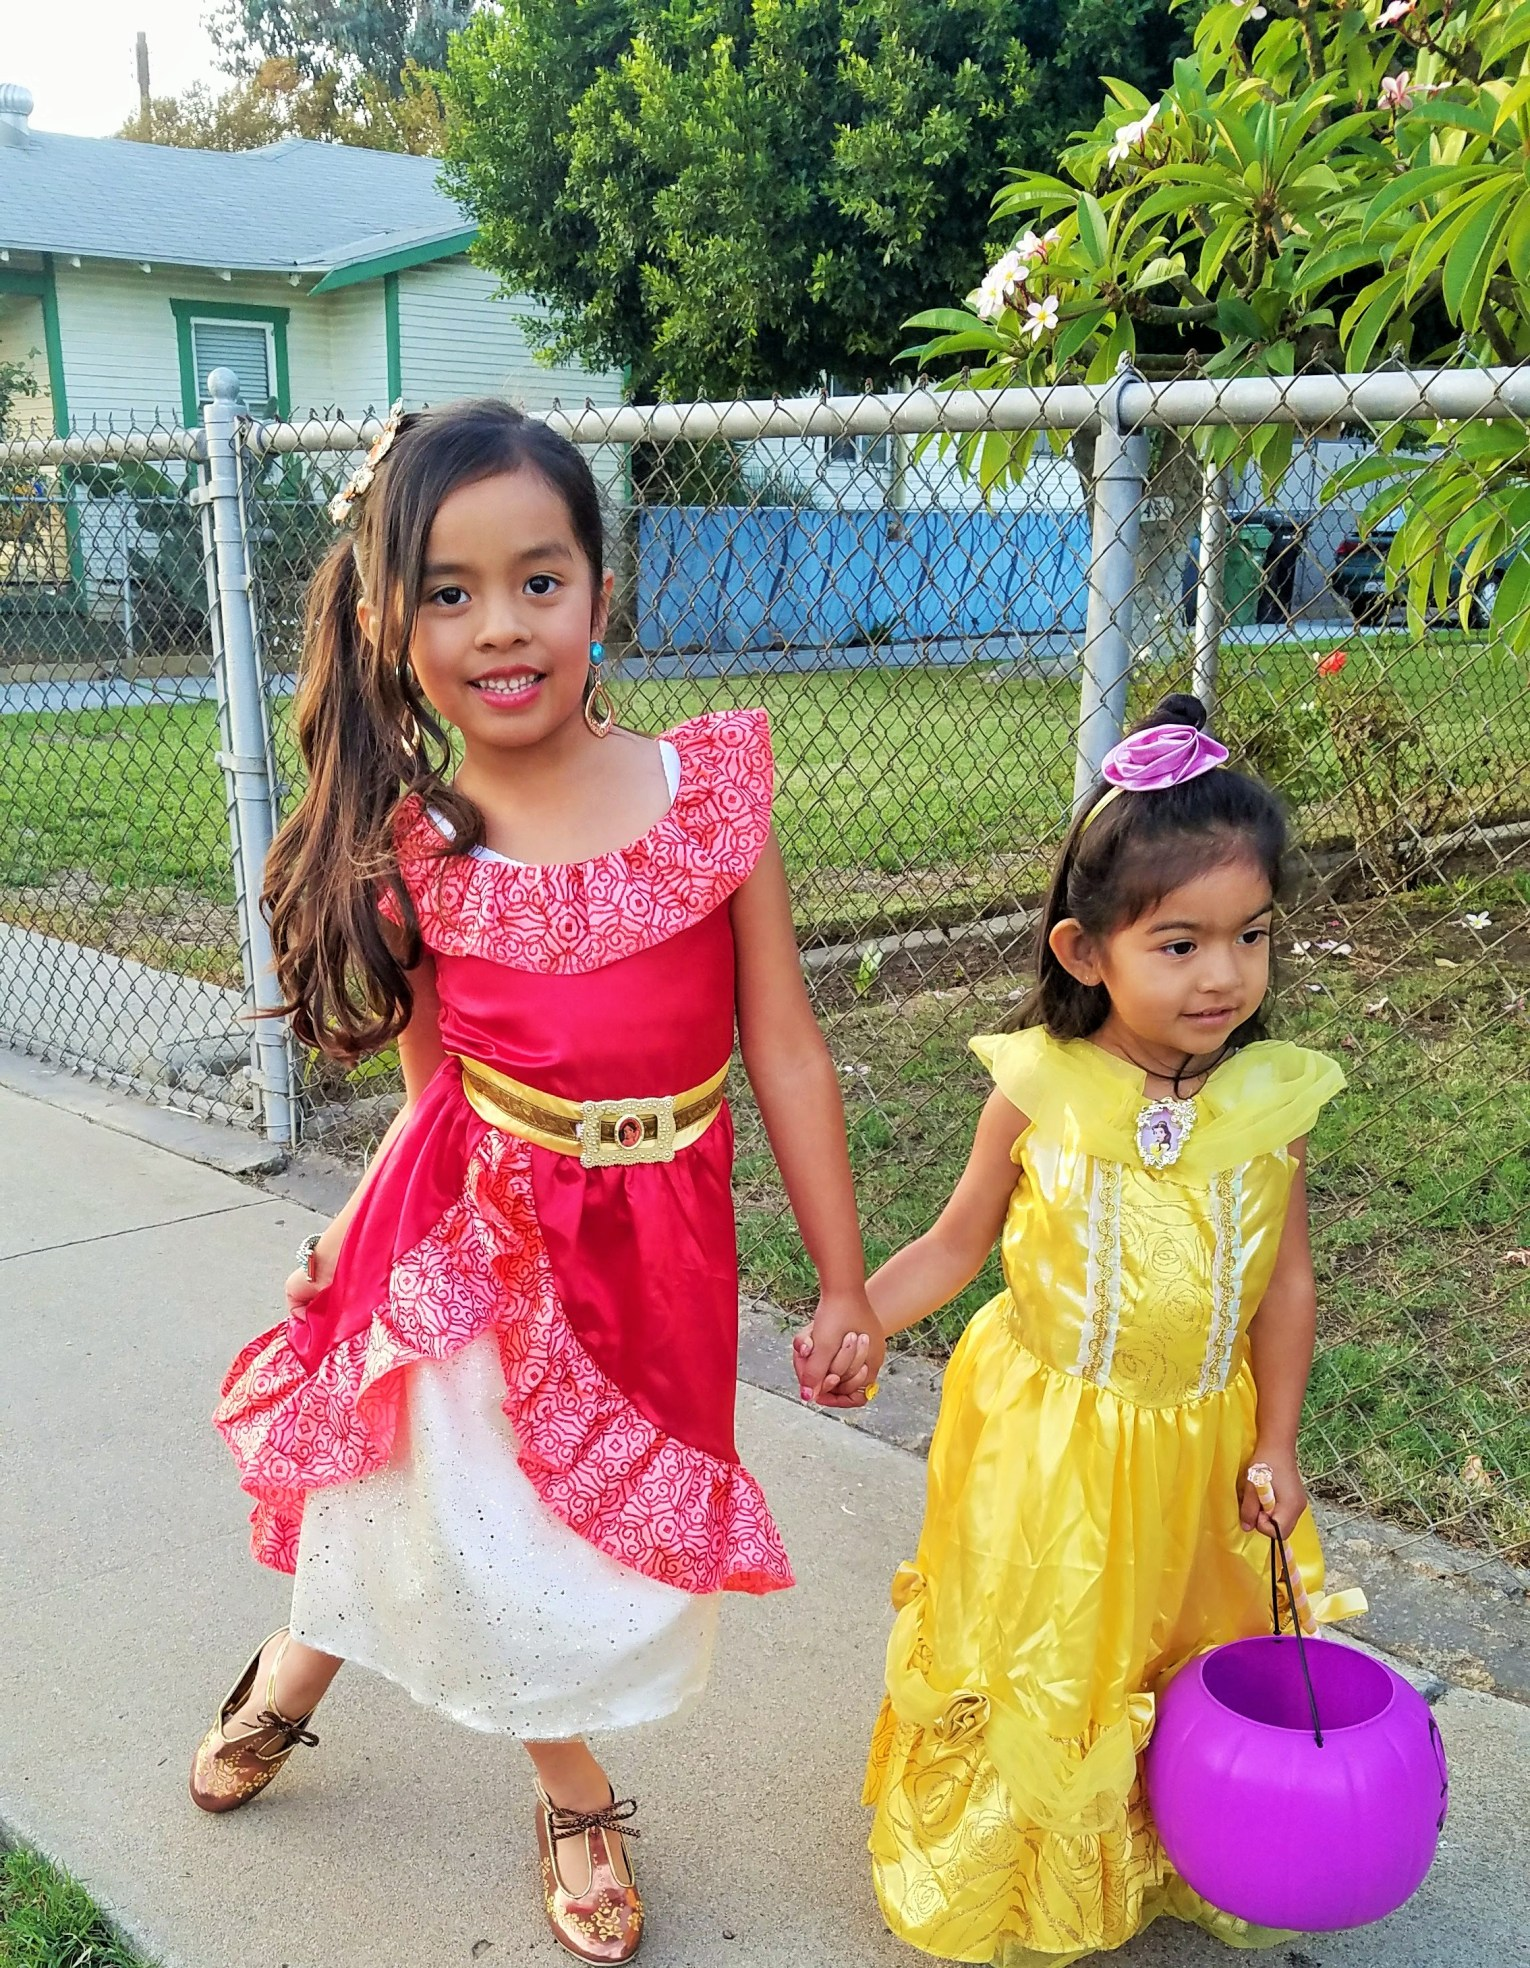 Princess Elena and Belle